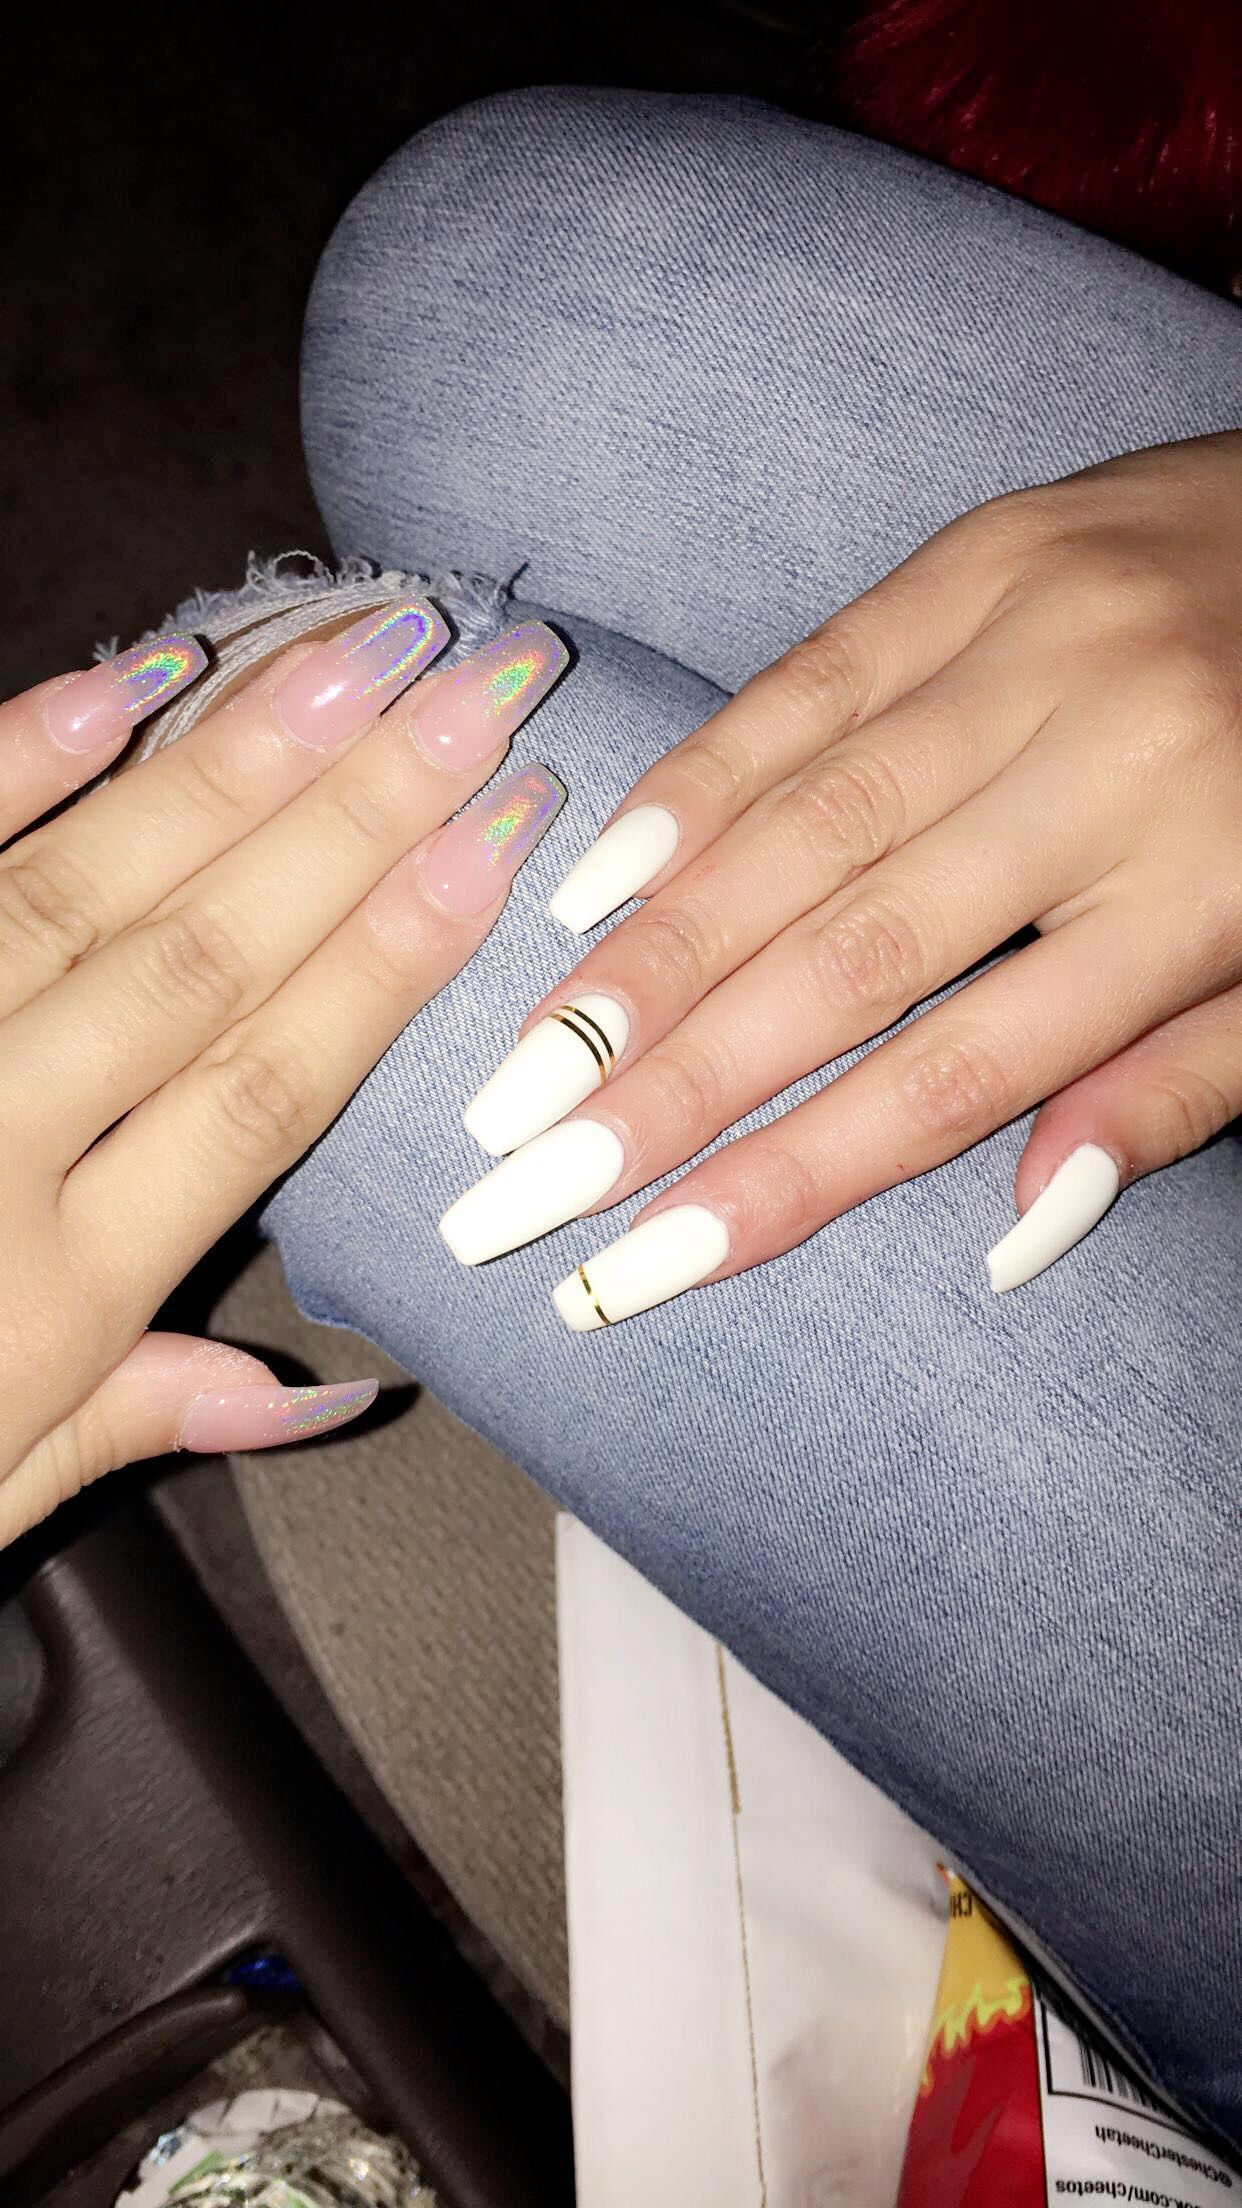 Pin By Alyssa Andresa On Nails Pink Holographic Nails Long Acrylic Nails Coffin Coffin Shape Nails